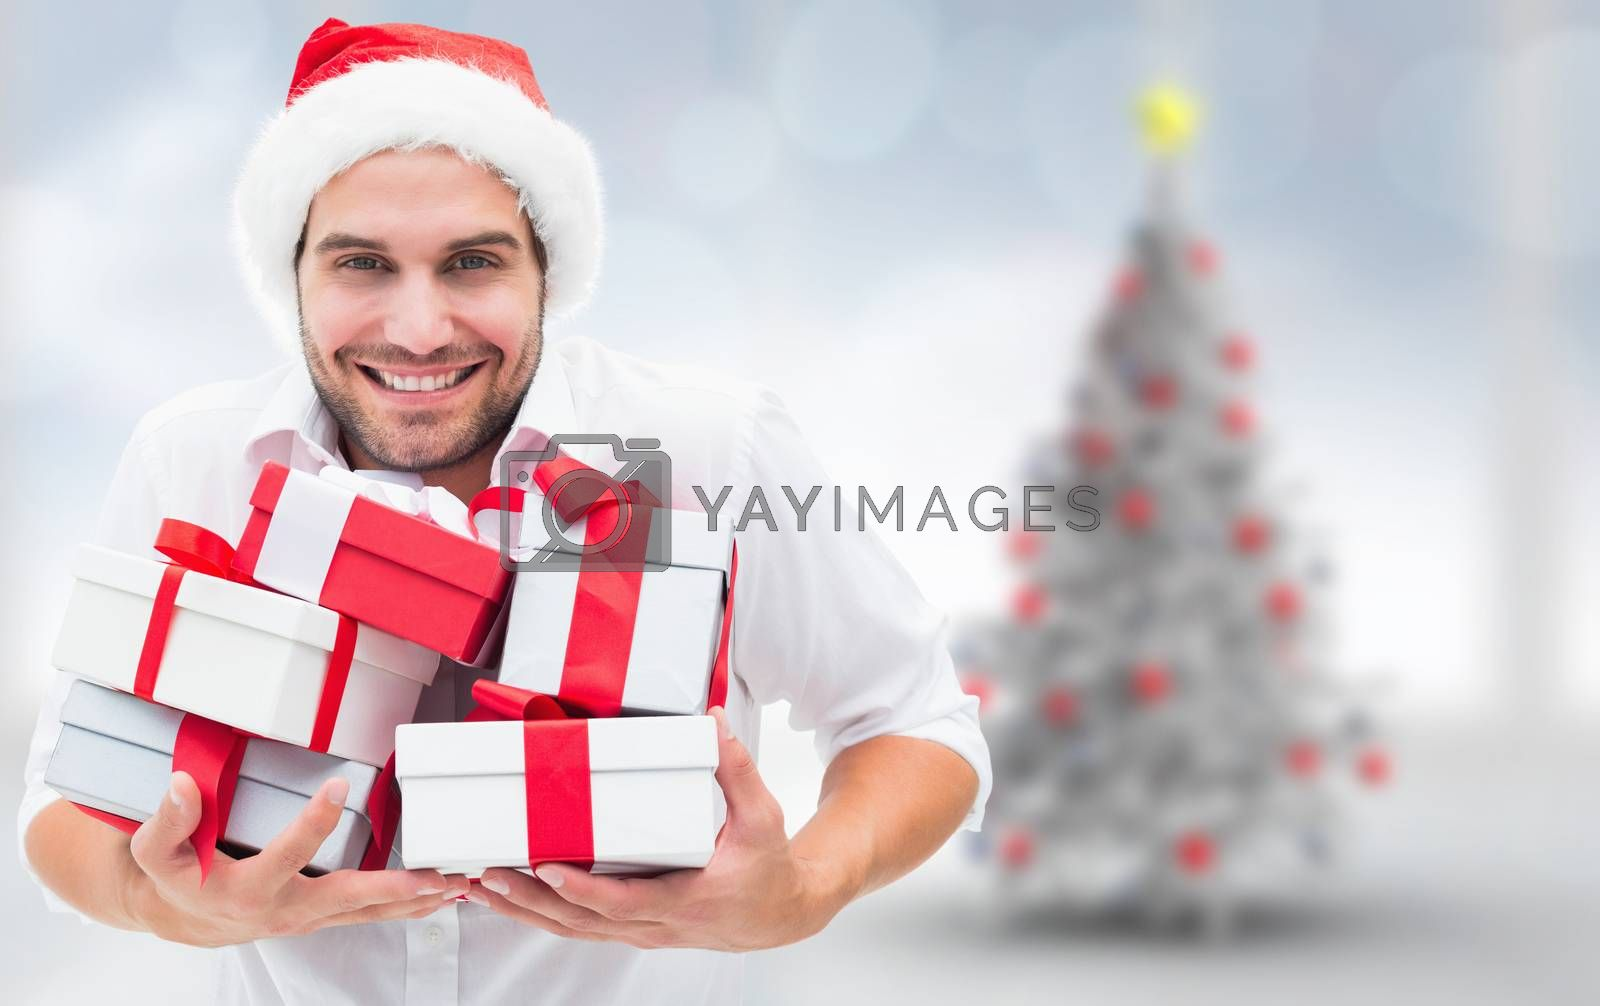 Festive man holding christmas gifts against blurry christmas tree in room